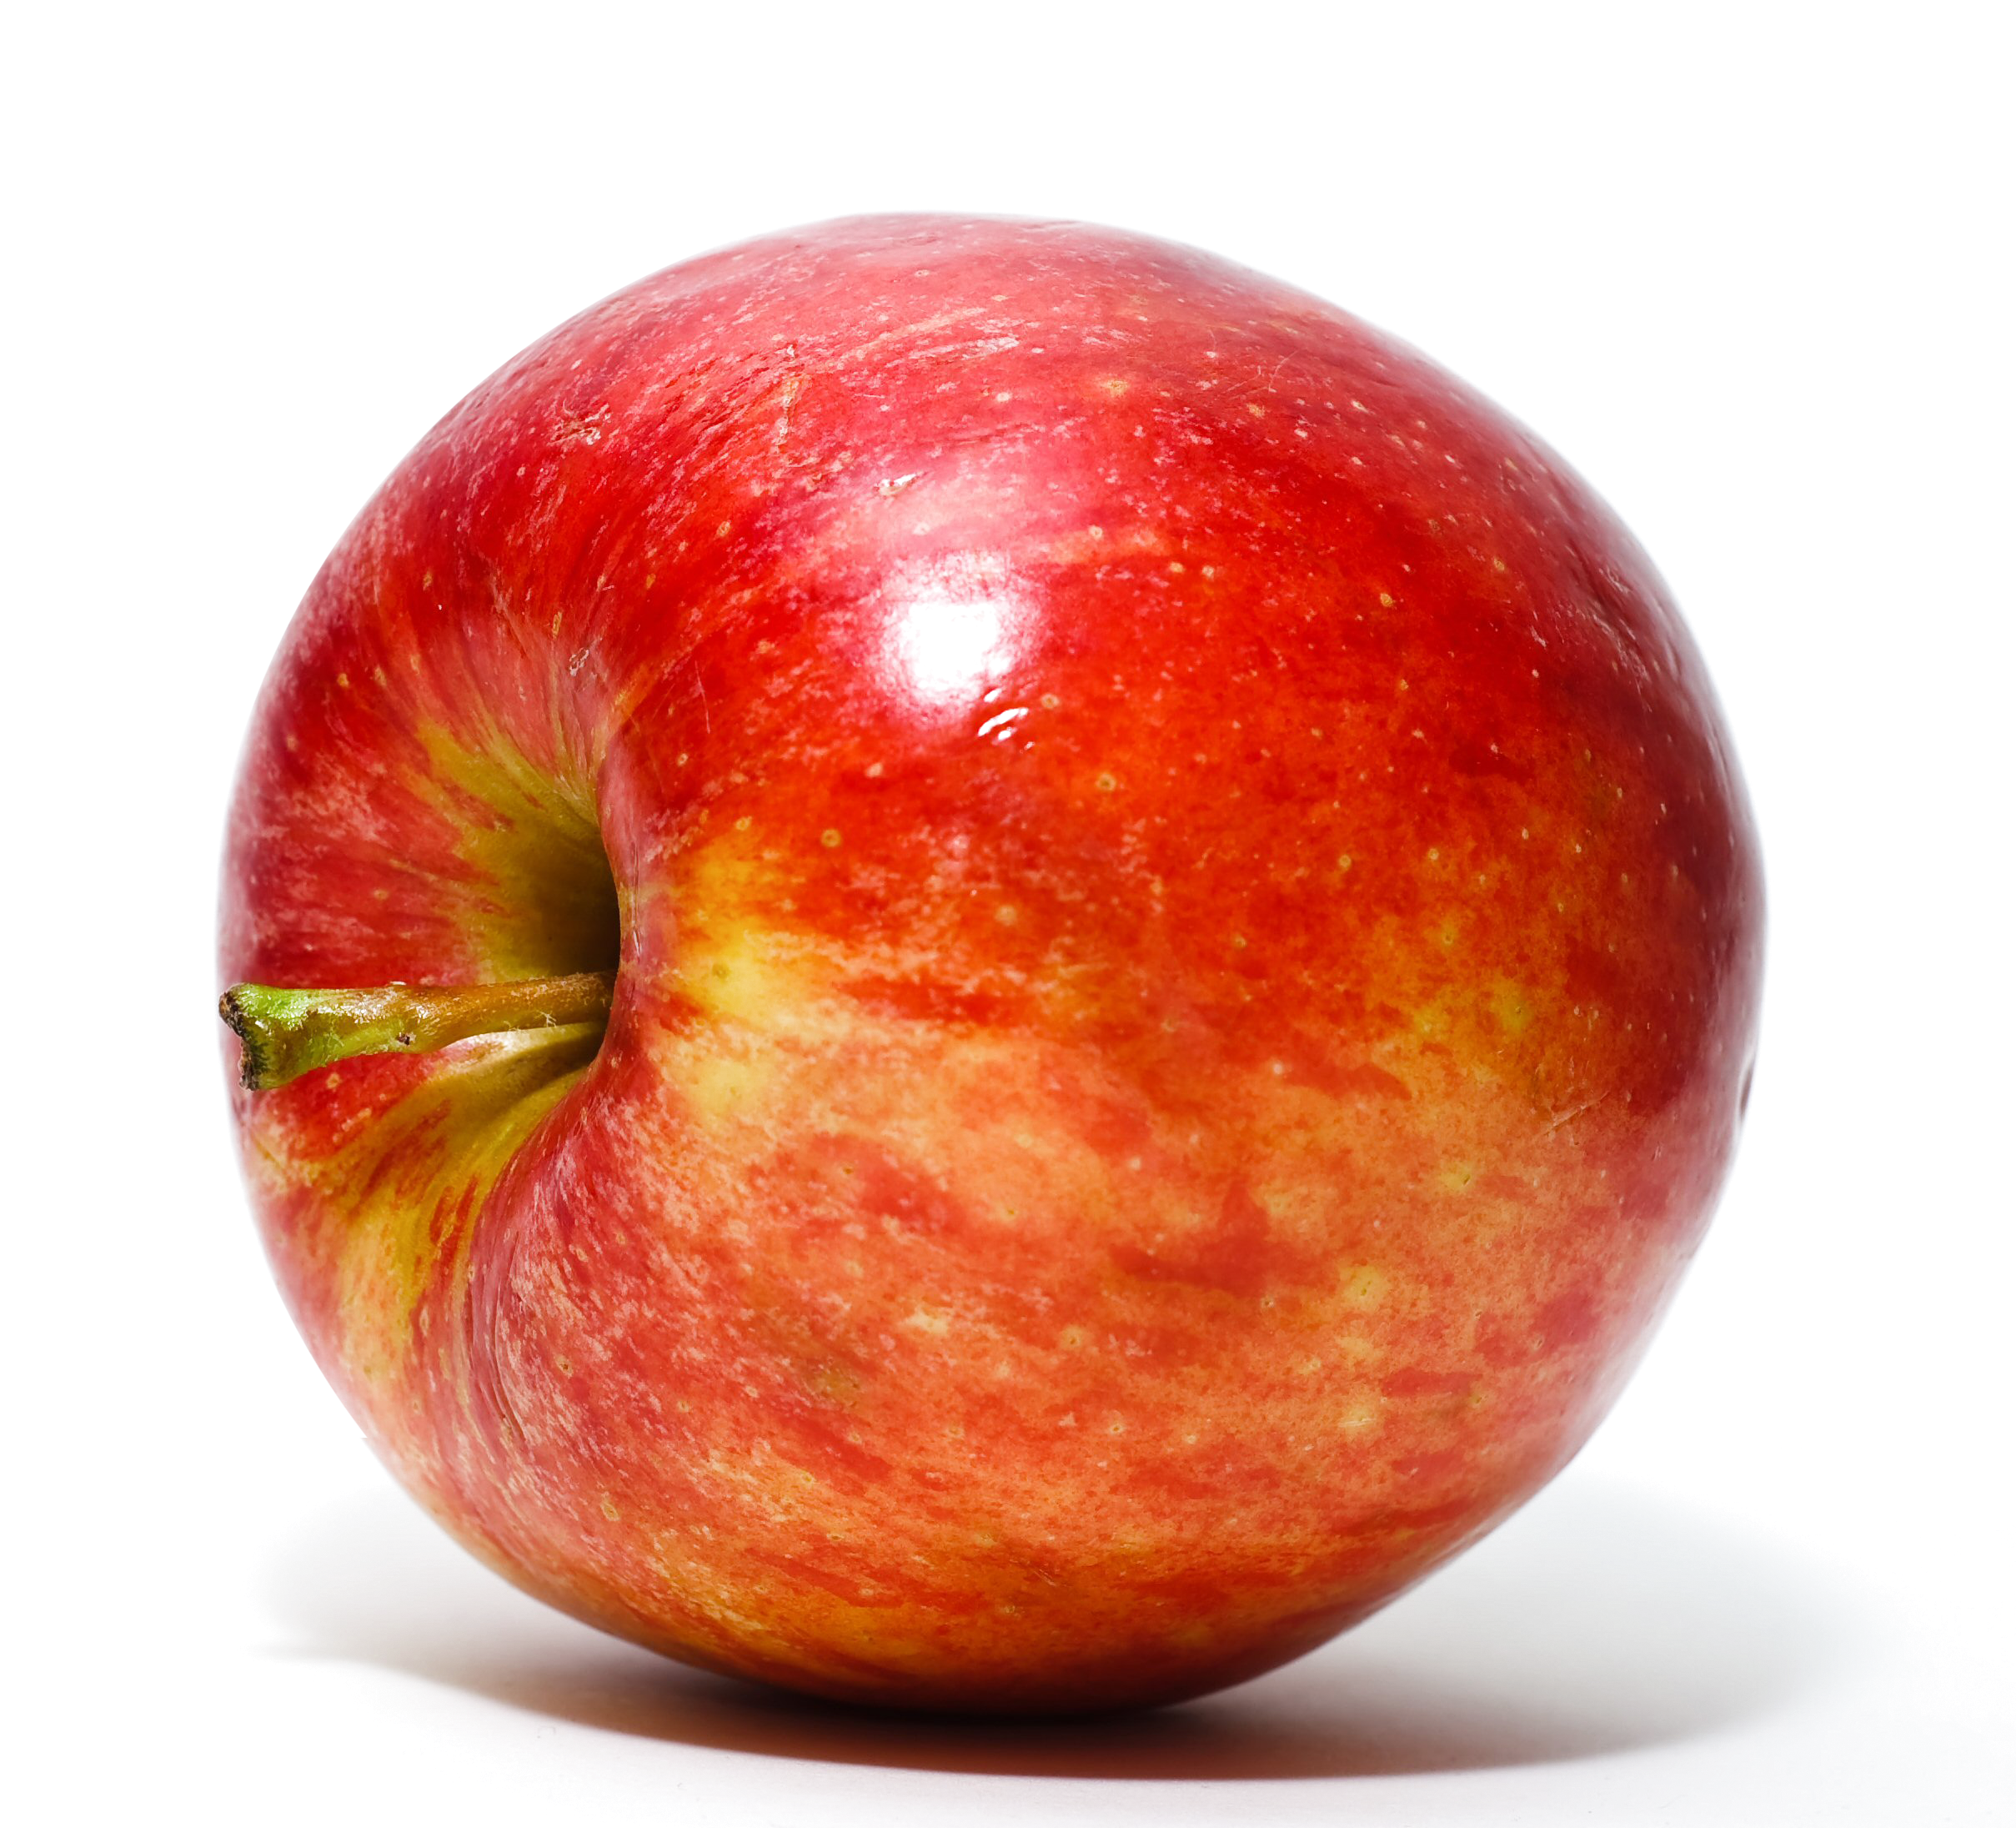 Apple png transparent. Red s image purepng